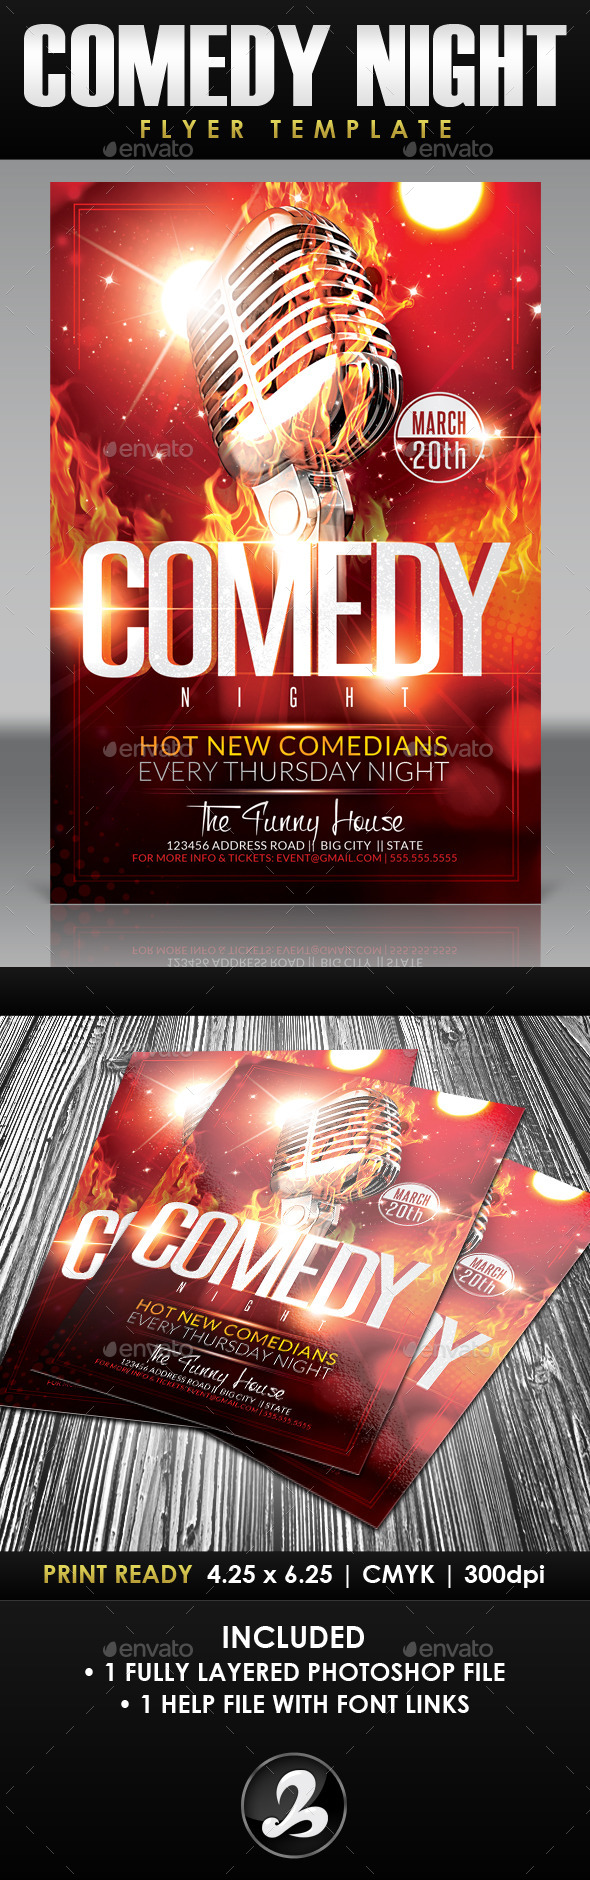 Comedy Night Flyer Template 3 - Events Flyers